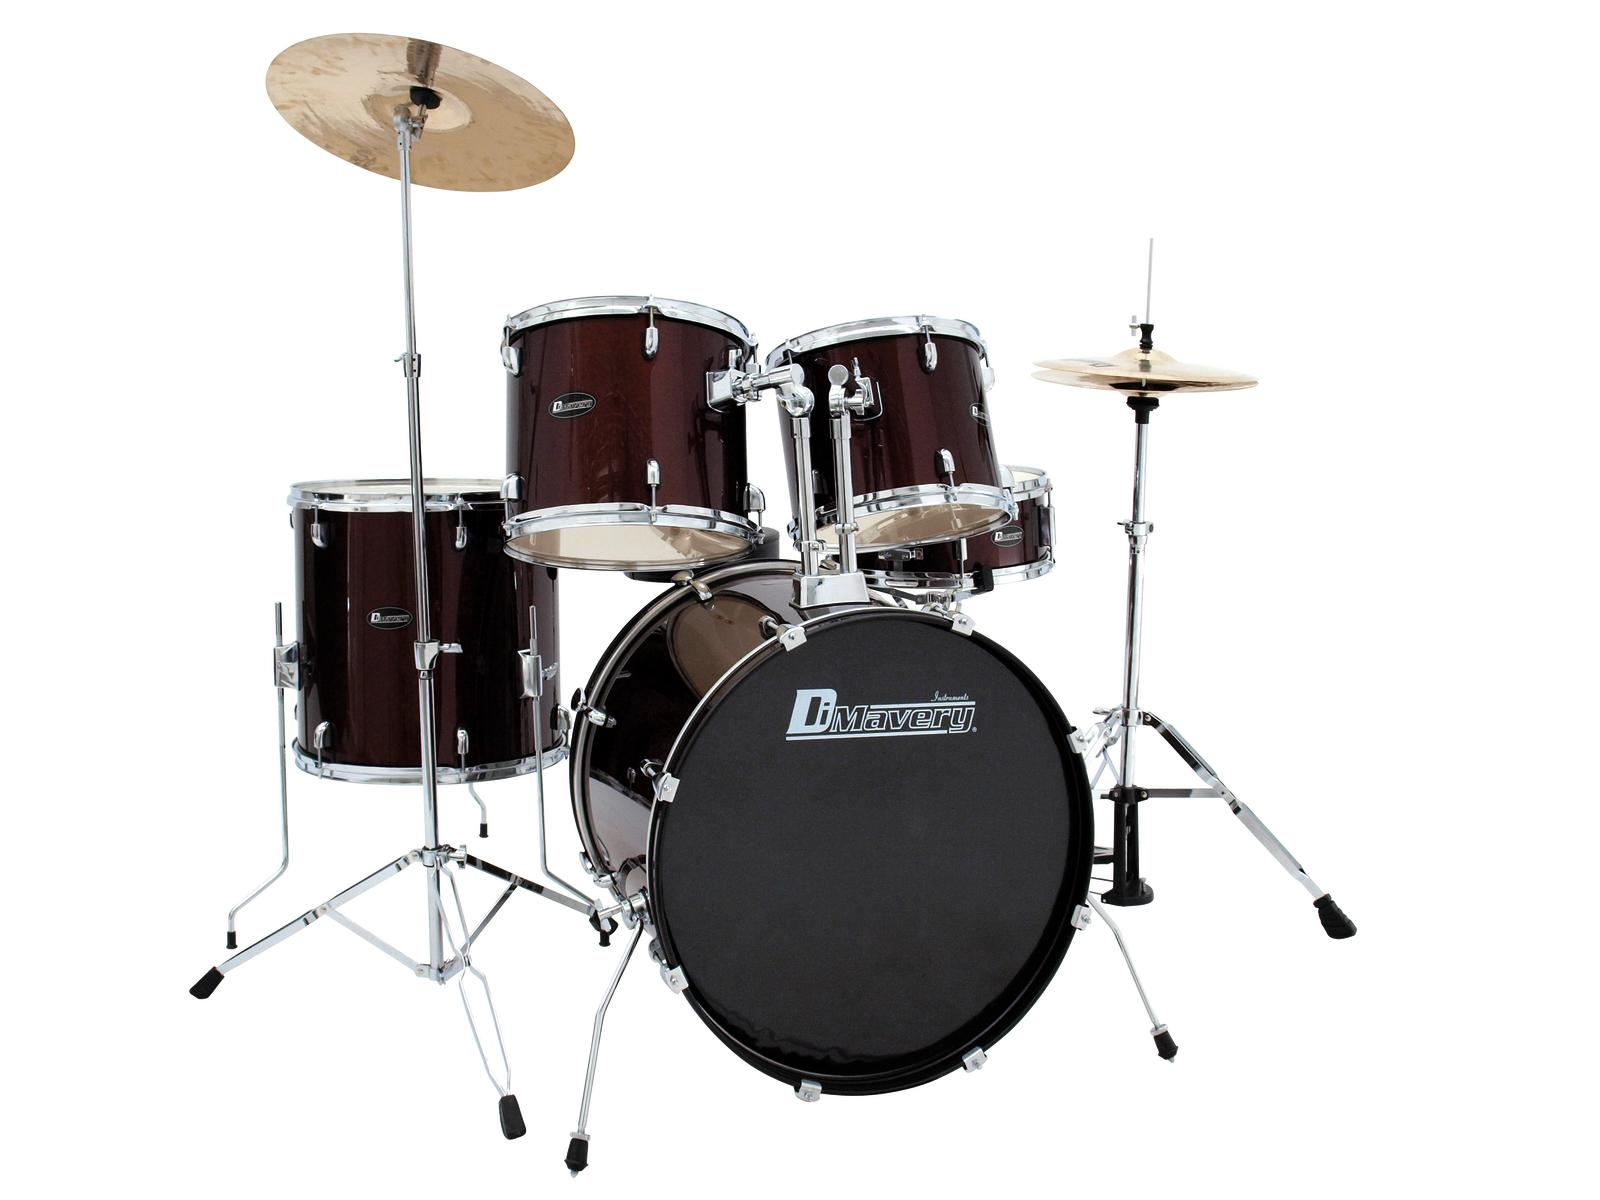 DIMAVERY DS-205 Drum set, verde